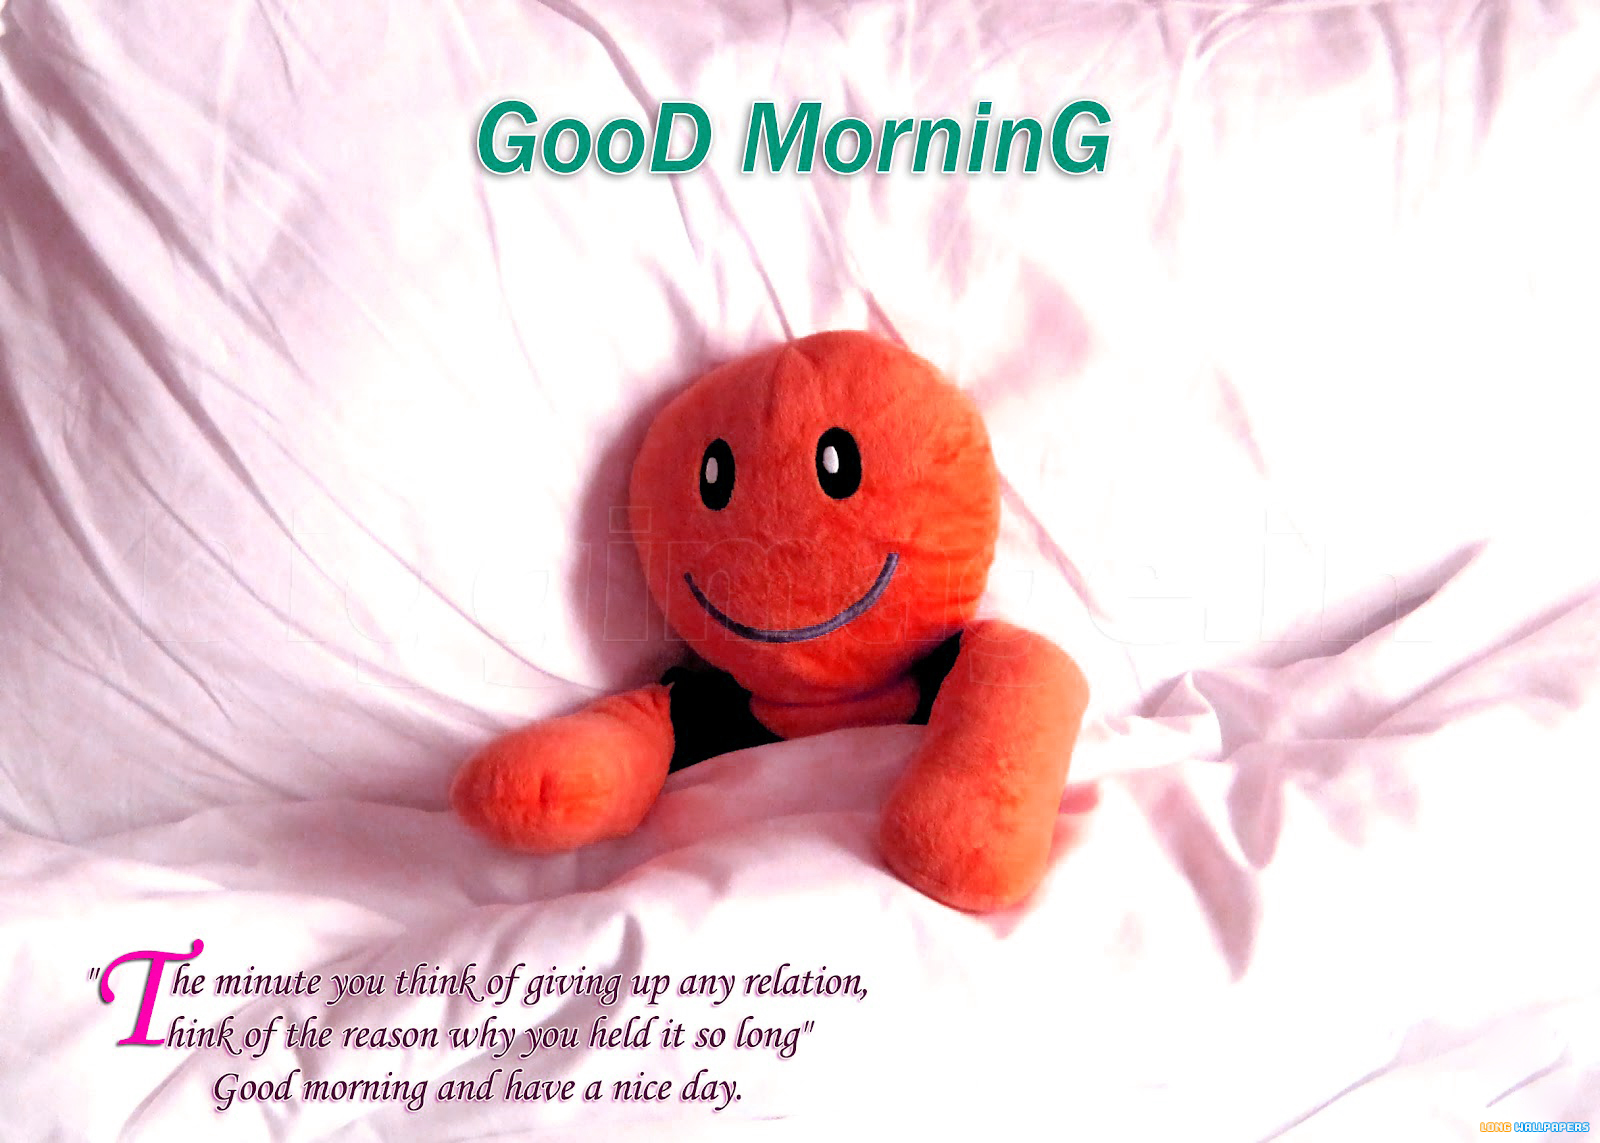 Good Morning Buddy In Spanish : Good morning quotes for facebook quotesgram